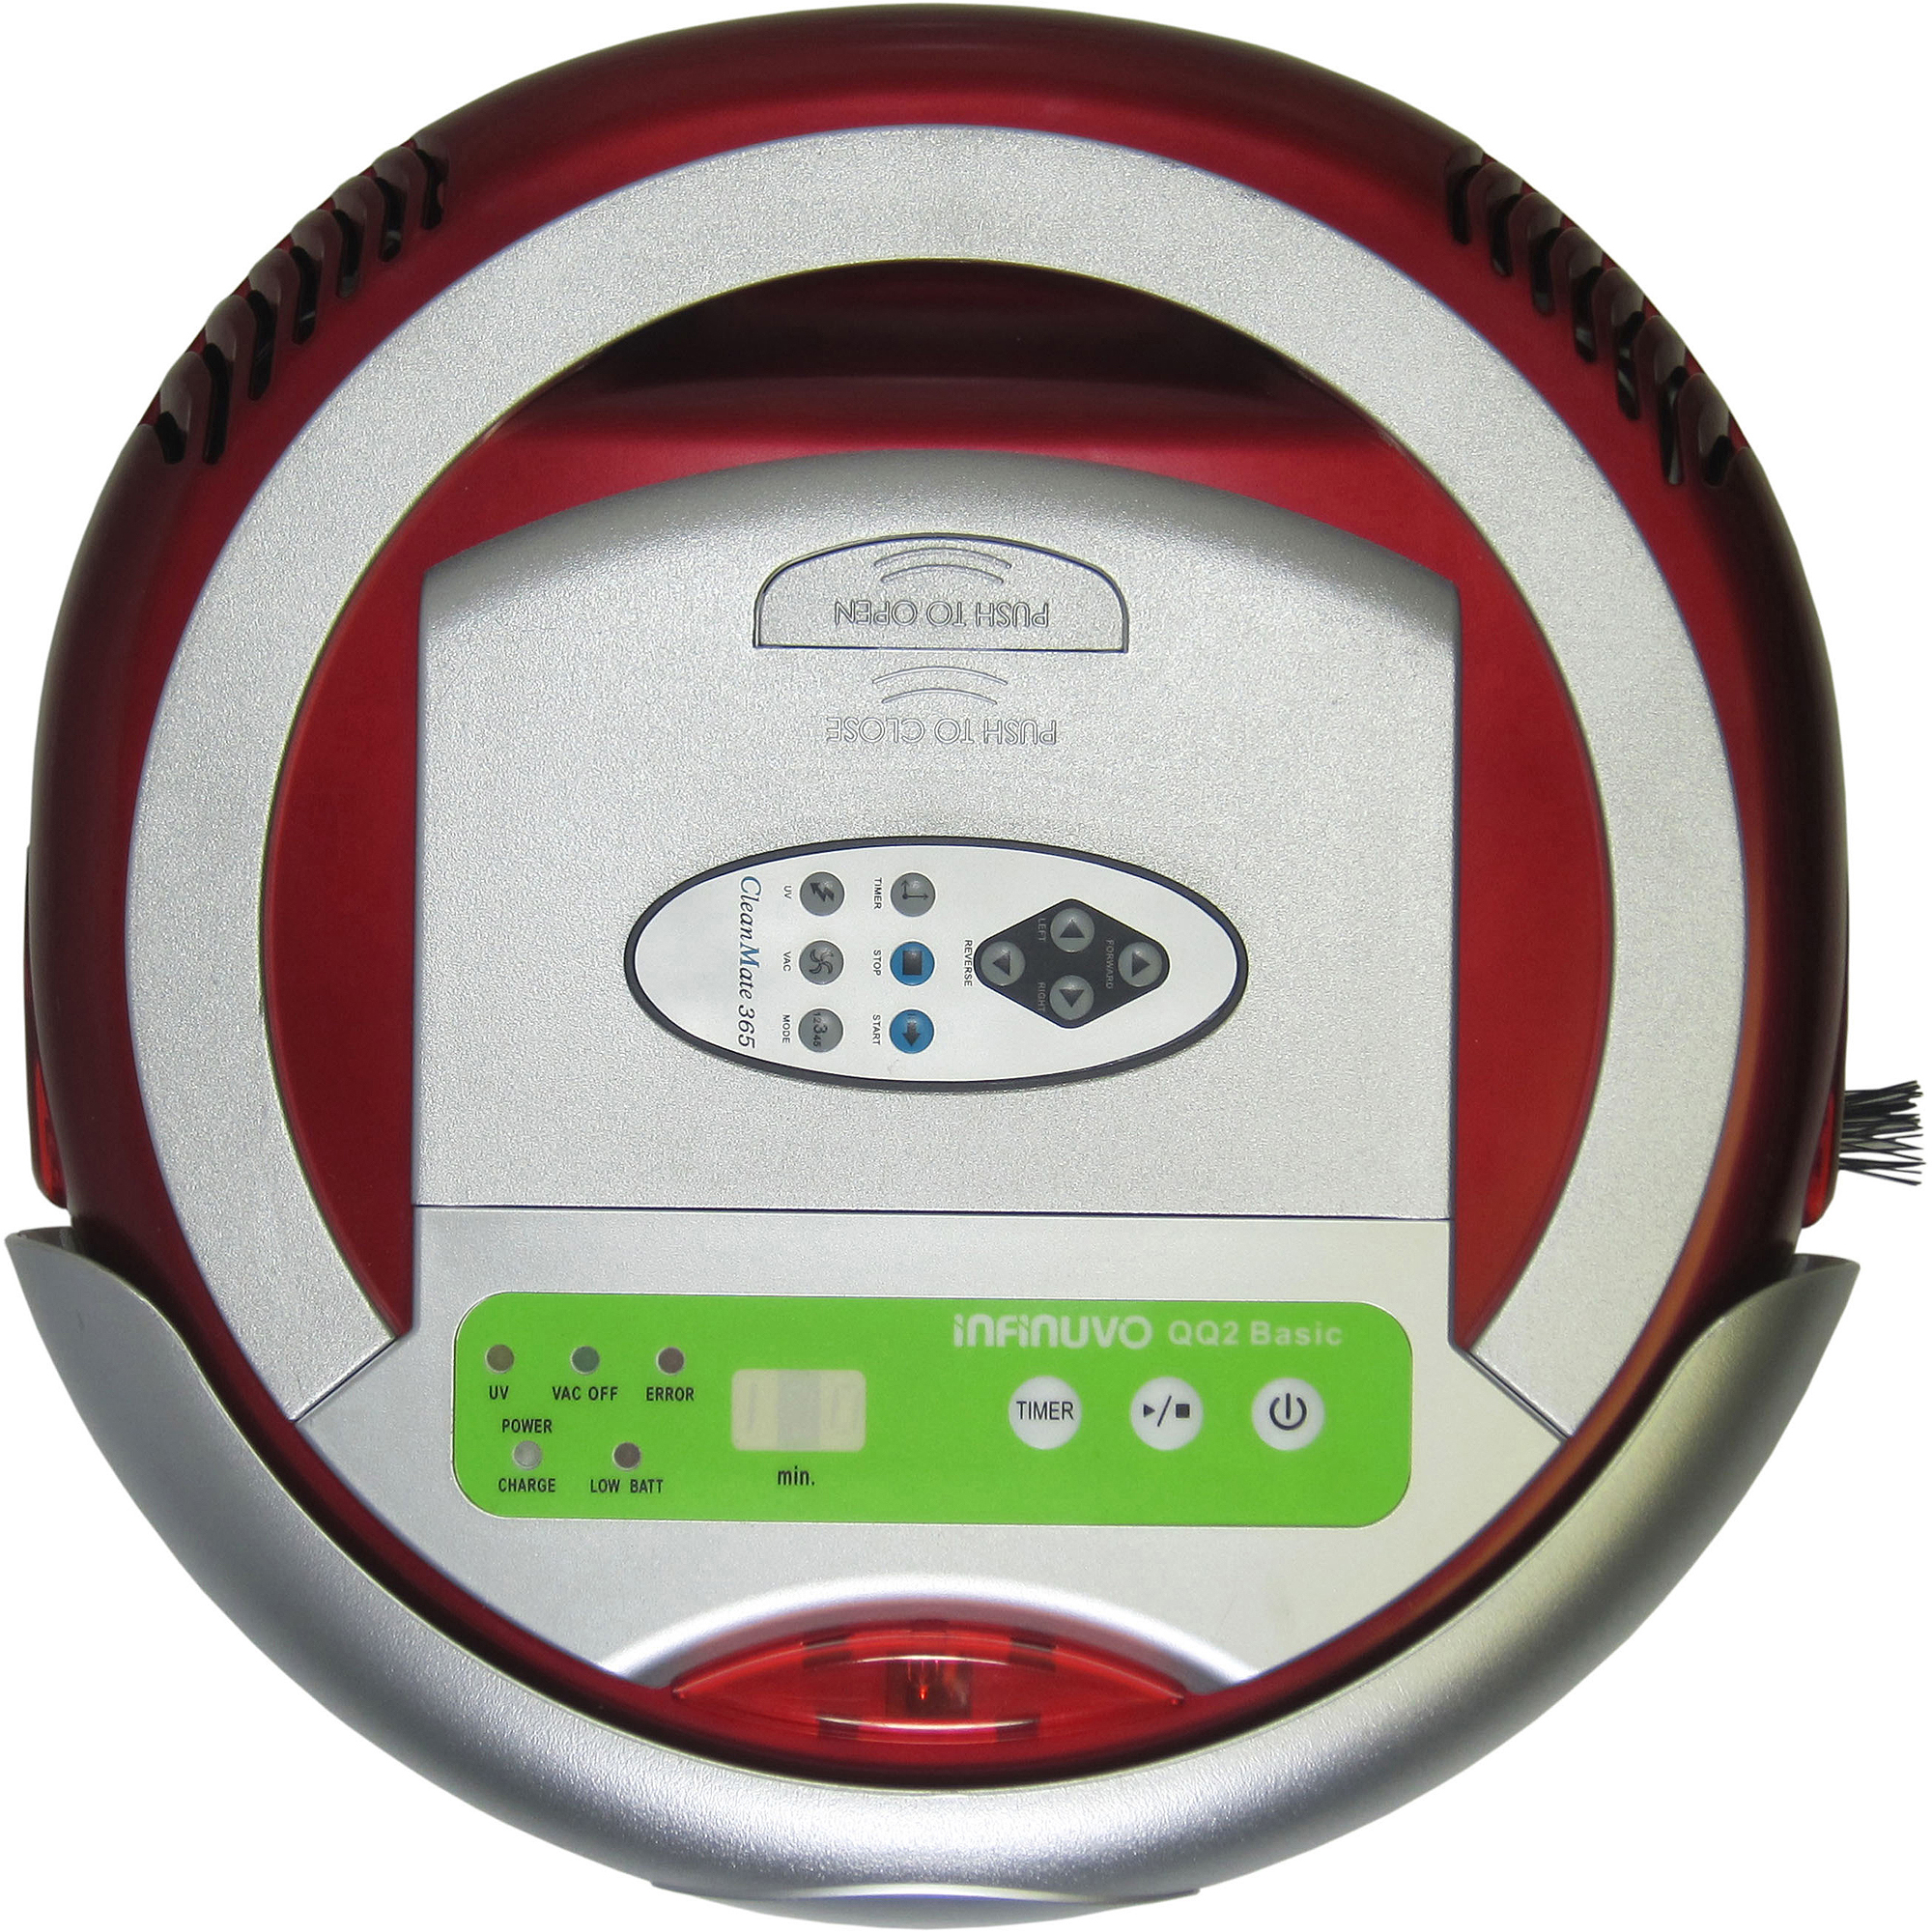 Metapo Infinuvo QQ-2 Basic Robotic Vacuum Cleaner, Red